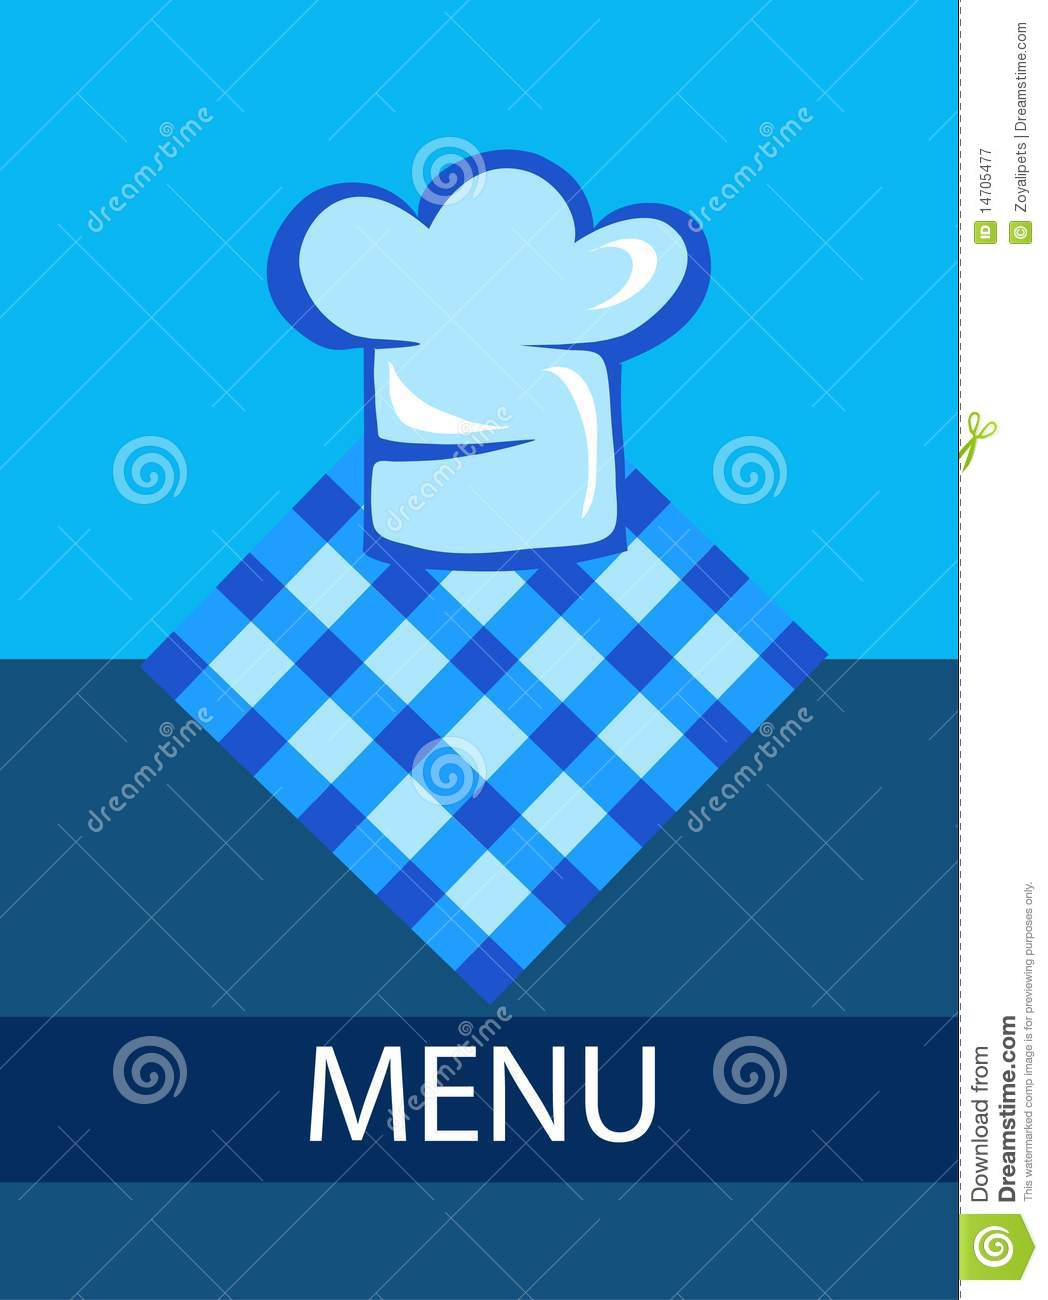 template for restaurant menu with chef hat royalty free stock photography image 14705477. Black Bedroom Furniture Sets. Home Design Ideas